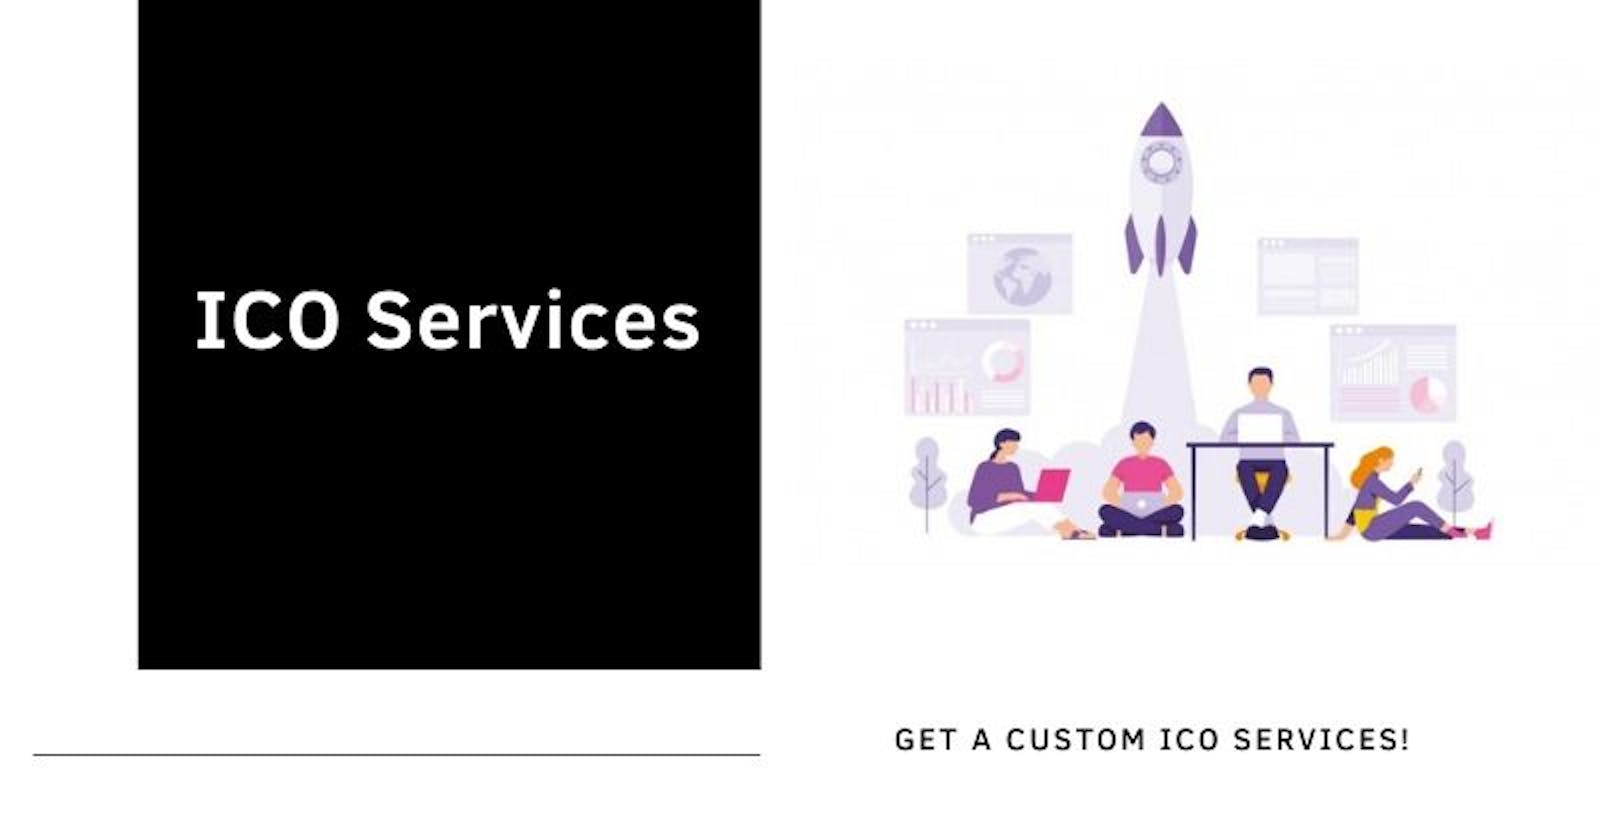 Where Can I Get Complete ICO Services?